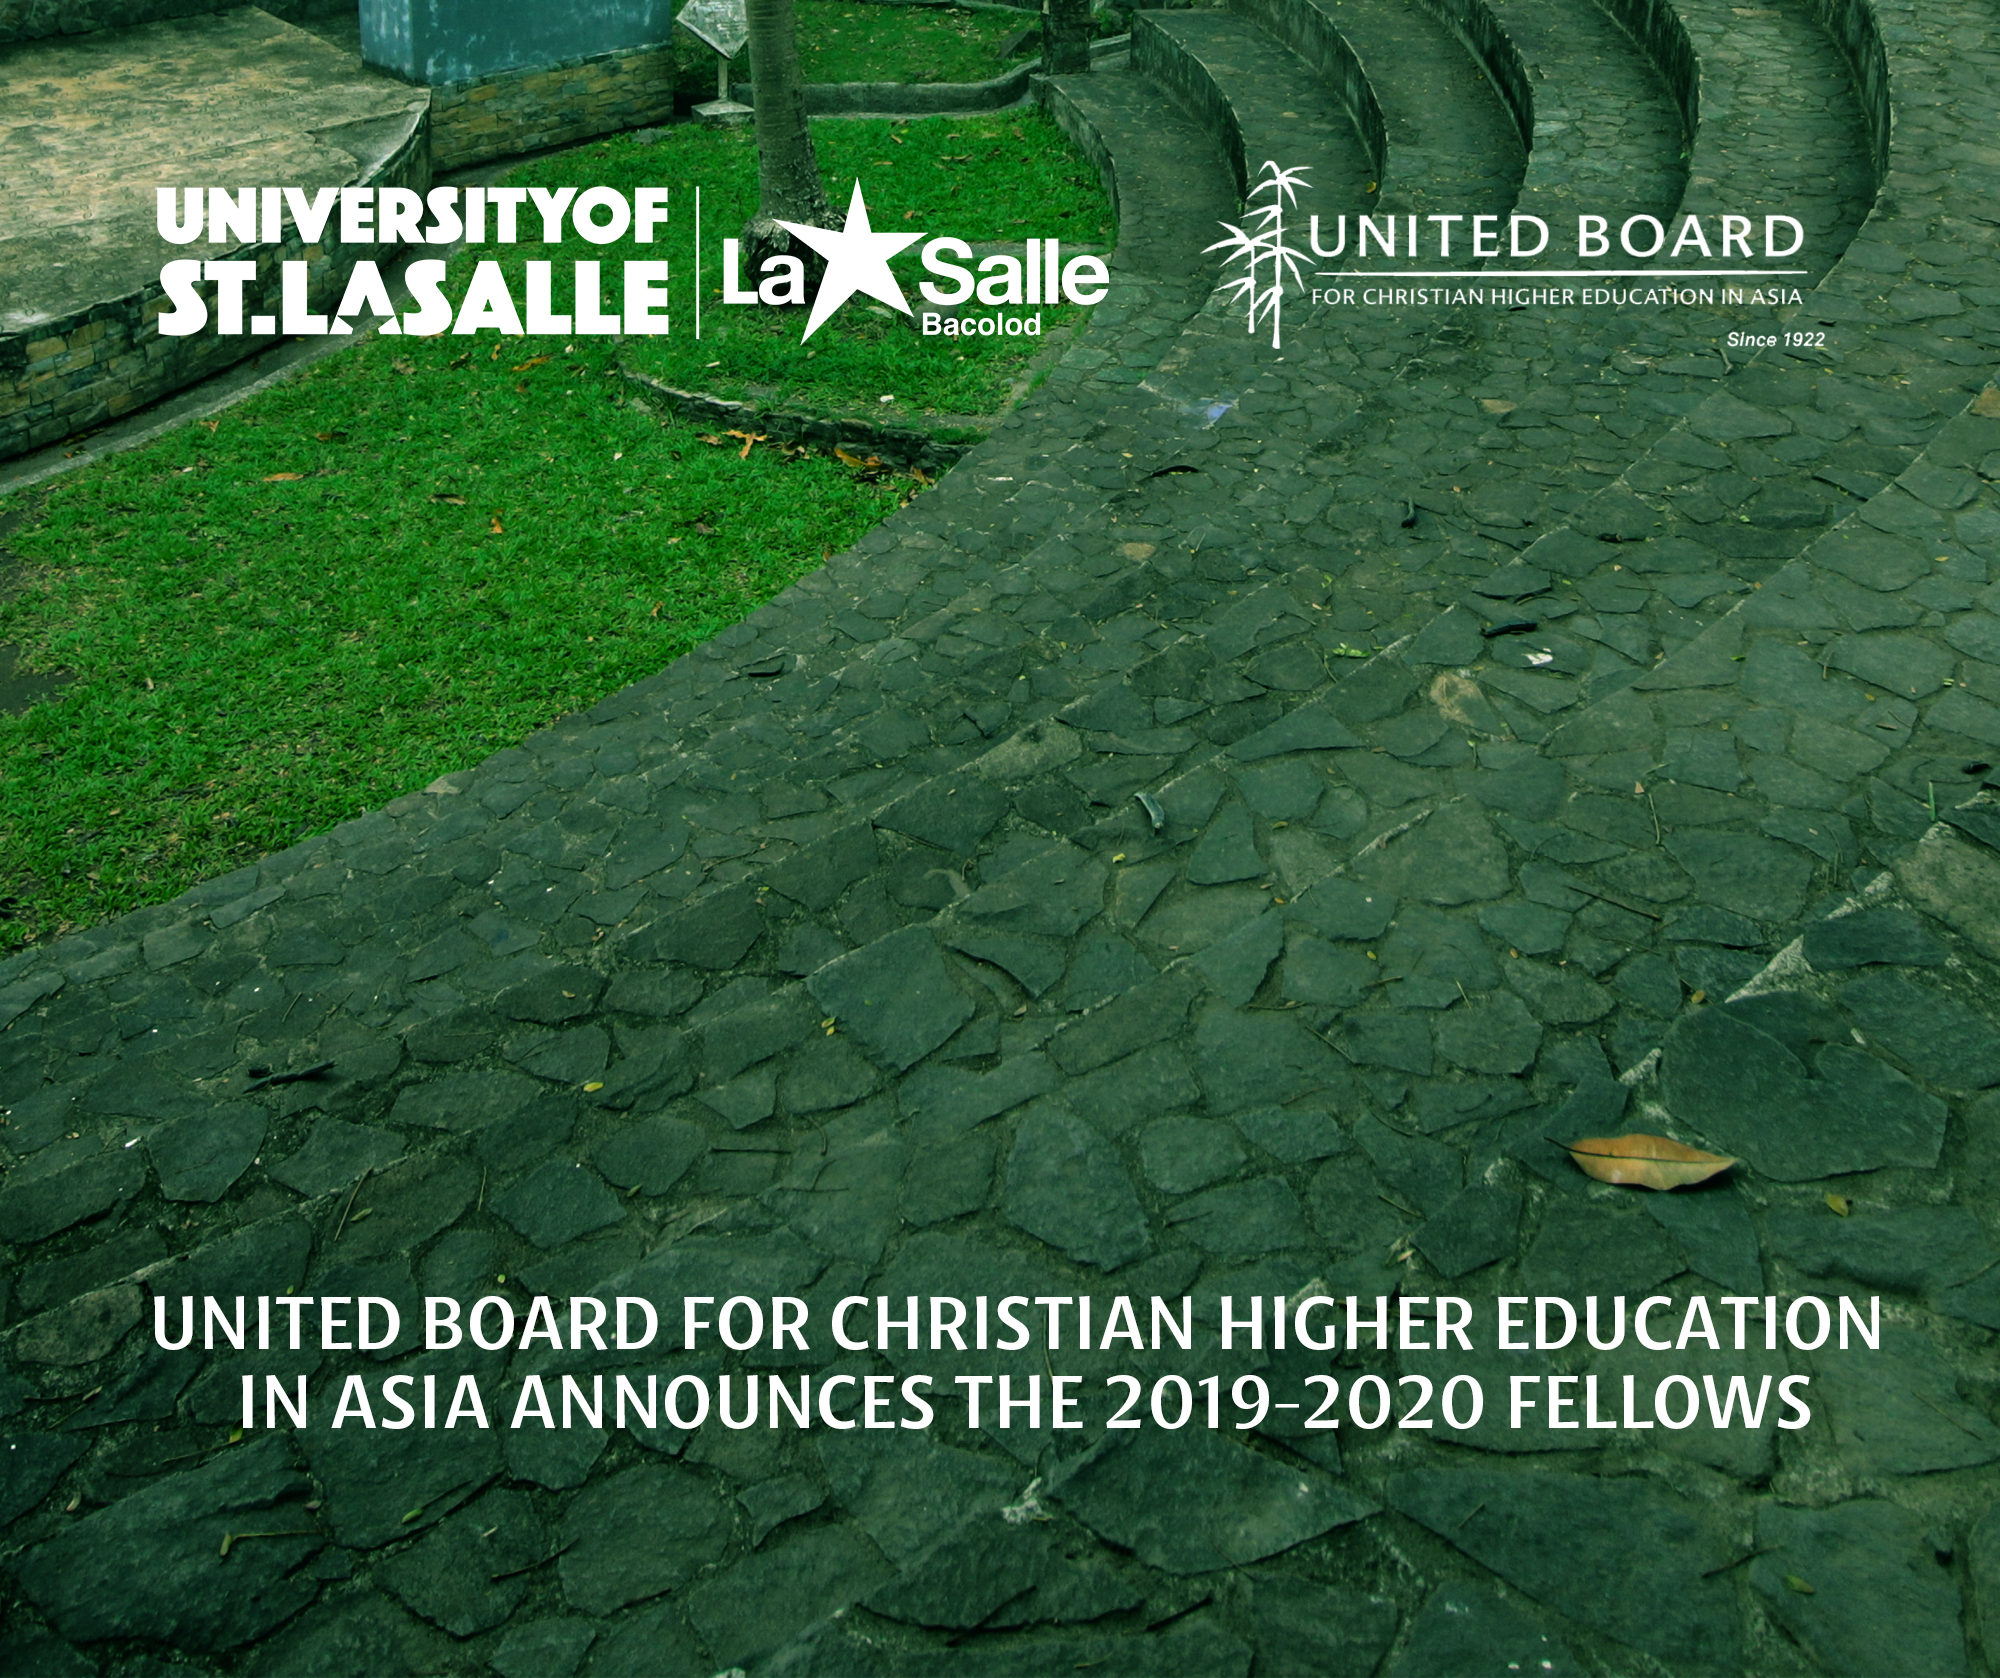 UNITED-BOARD-FOR-CHRISTIAN-HIGHER-EDUCATION-IN-ASIA-ANNOUNCES-THE-2019-2020-FELLOWS.jpg